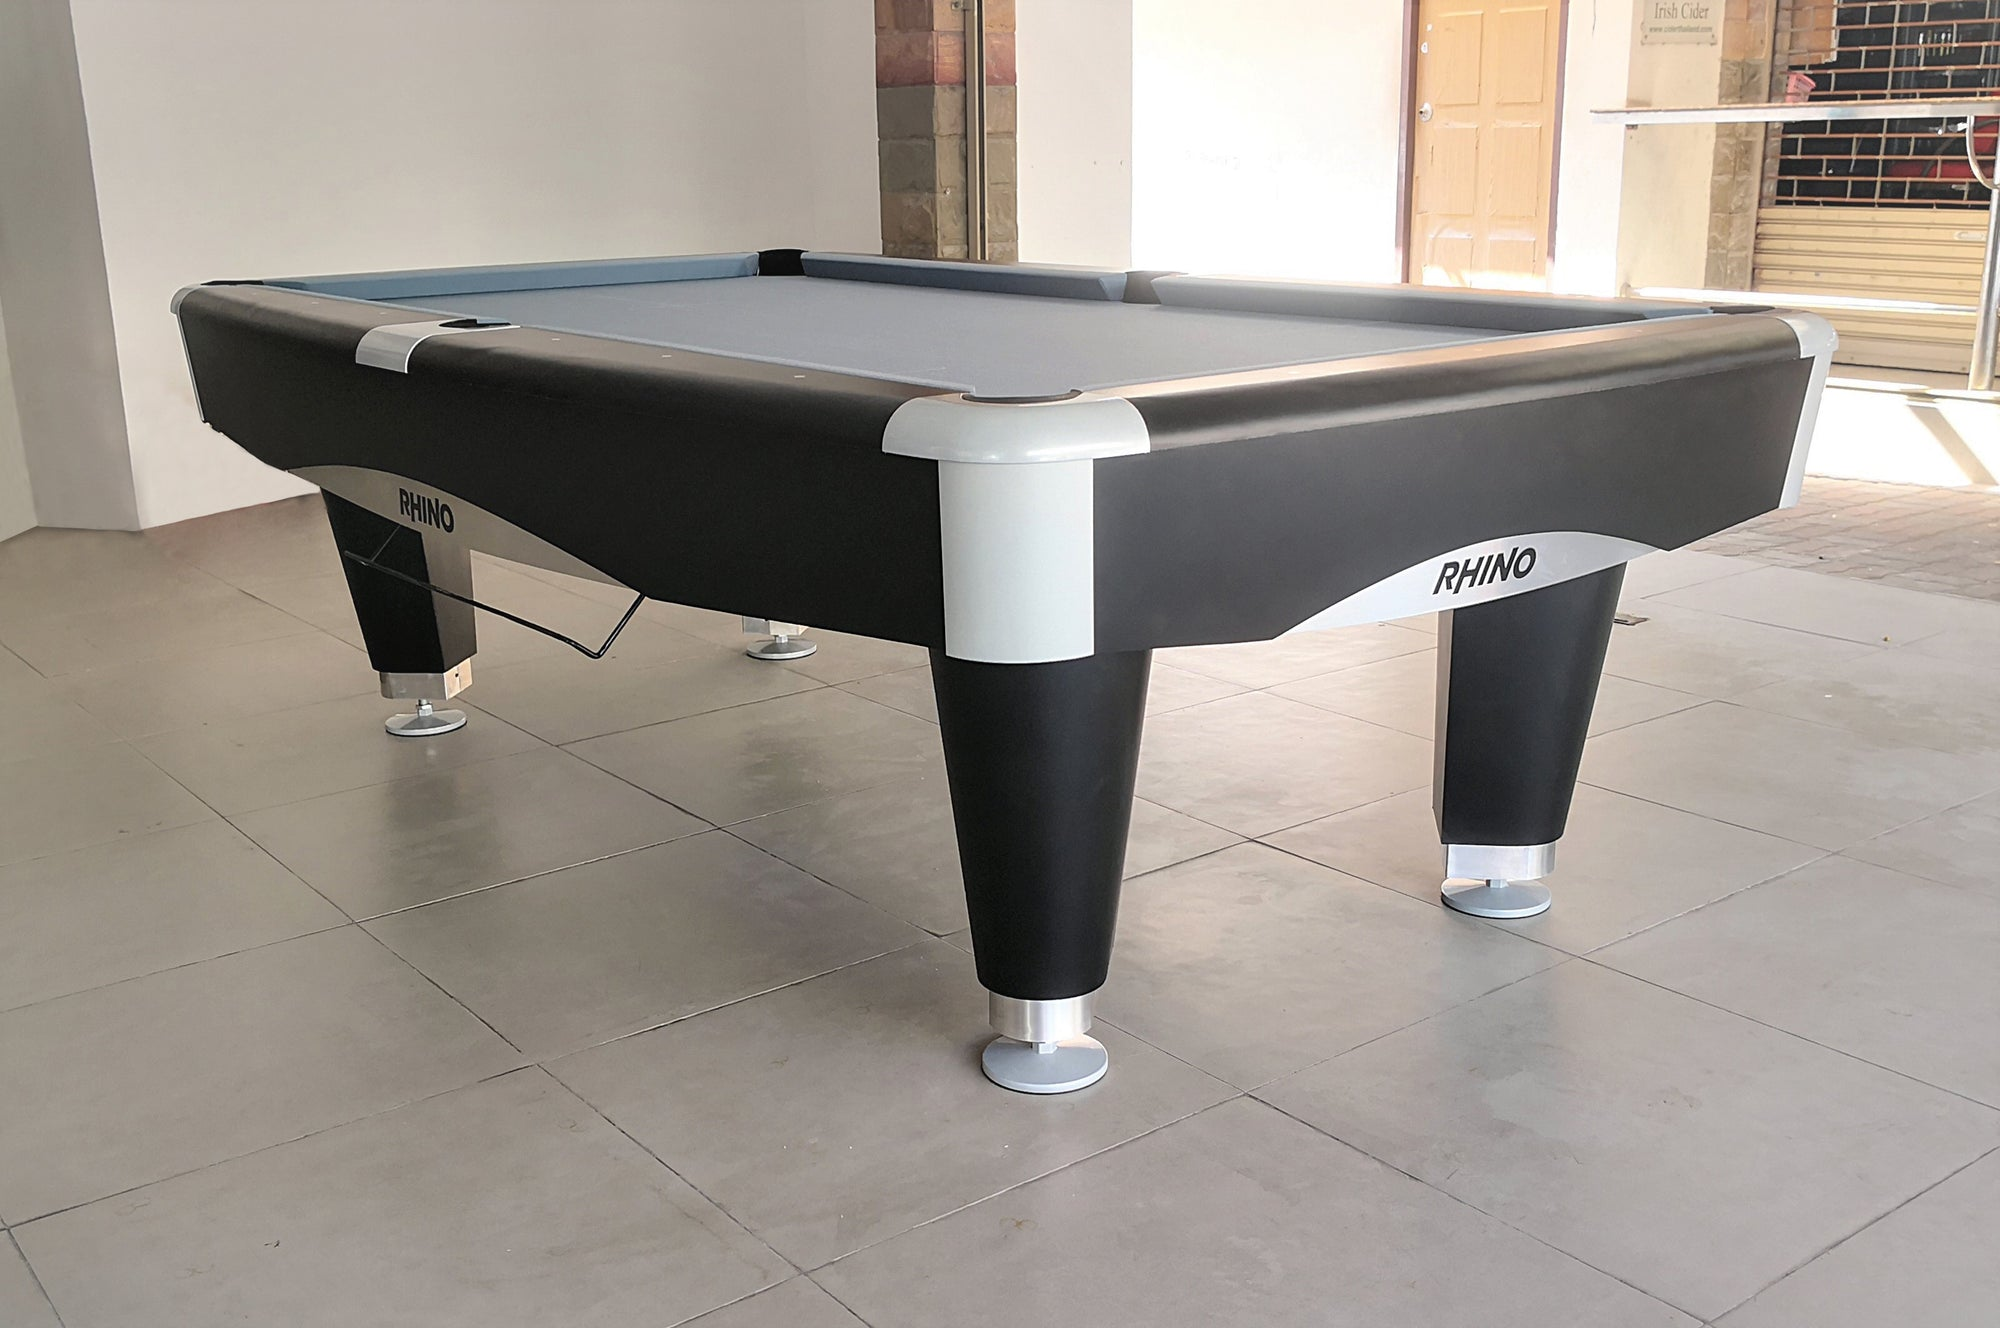 Amazing Rhino Sport Pool Tables Rhino Pool Tables Home Interior And Landscaping Sapresignezvosmurscom